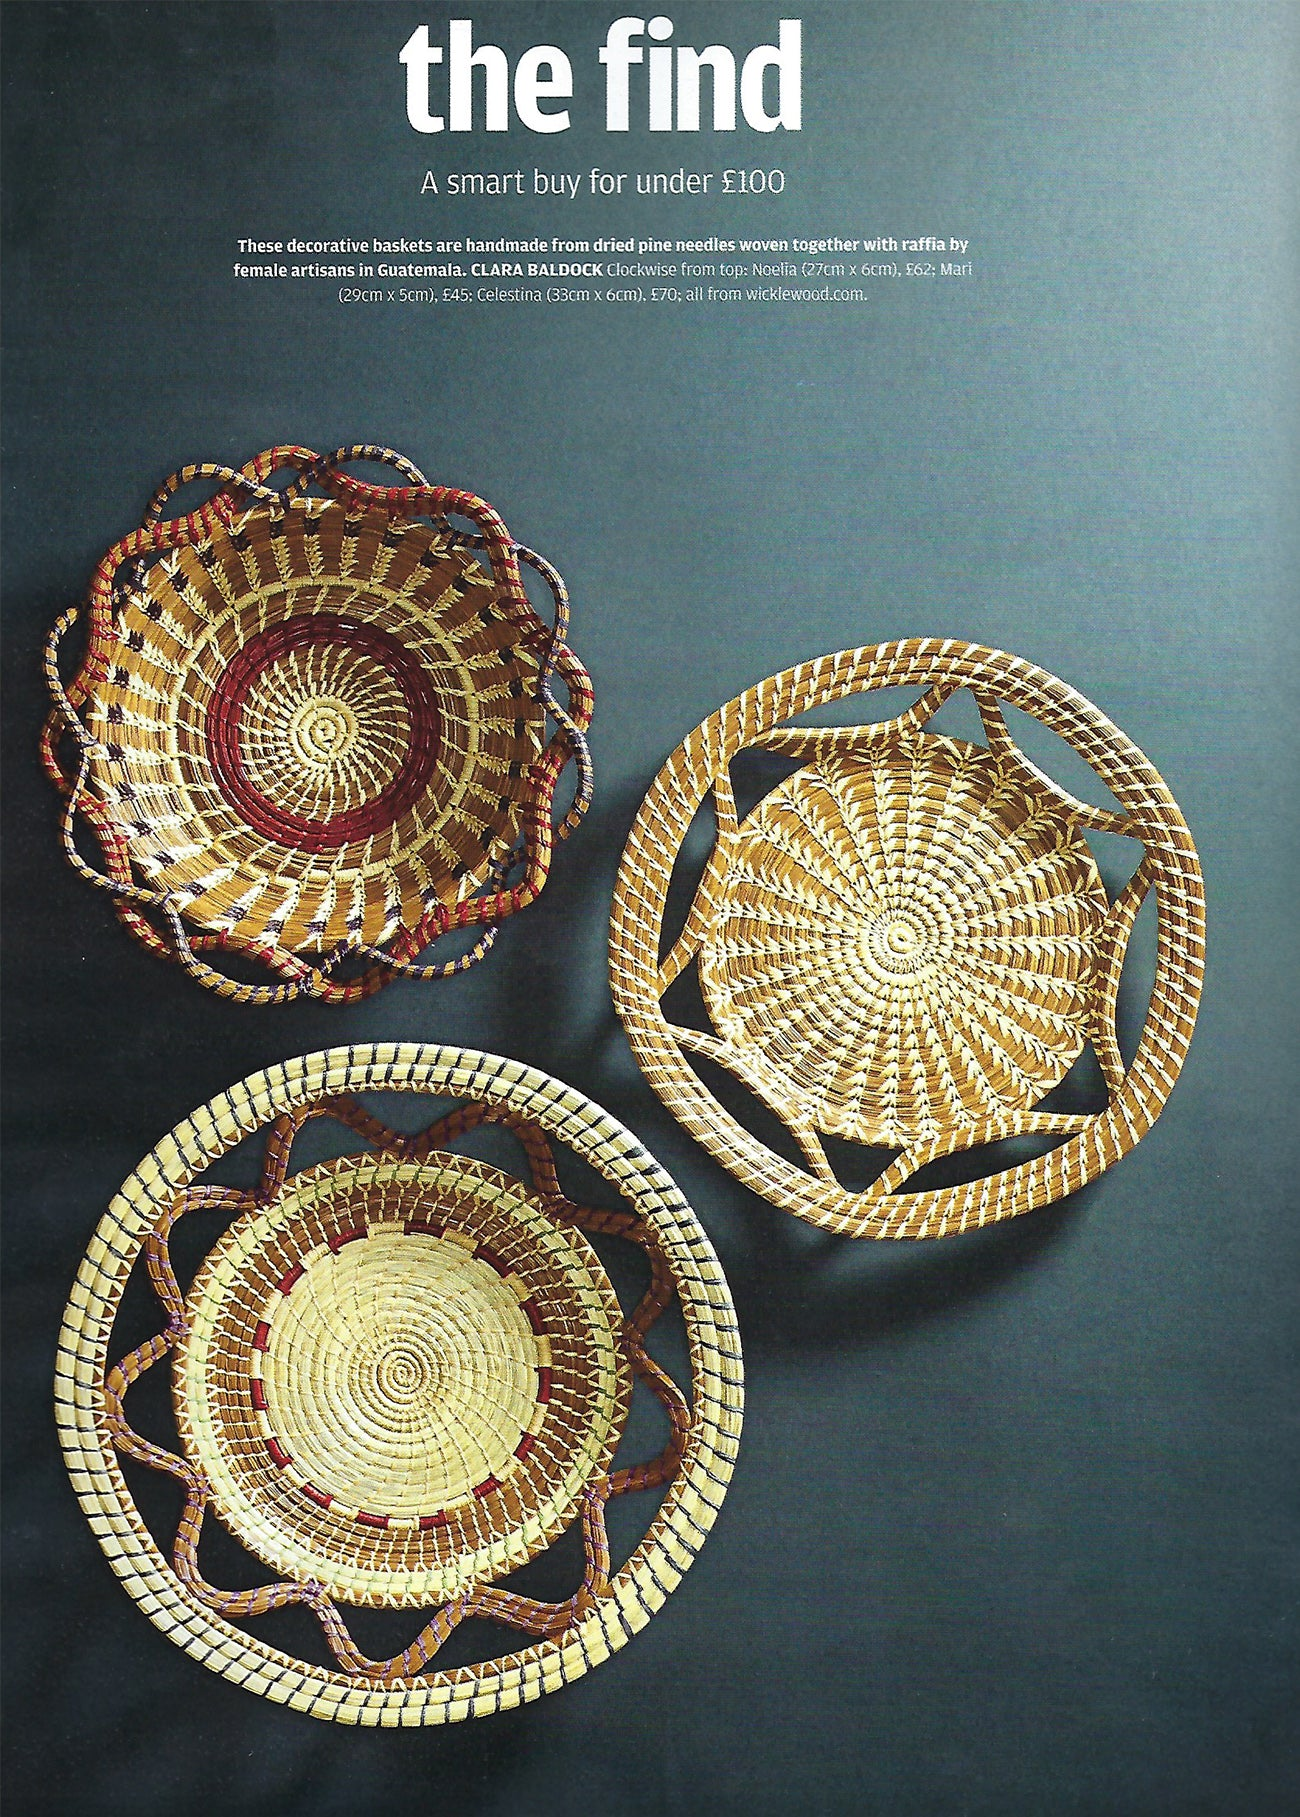 Wicklewood guatemalan baskets featured on How to Spend It - Finantial Times